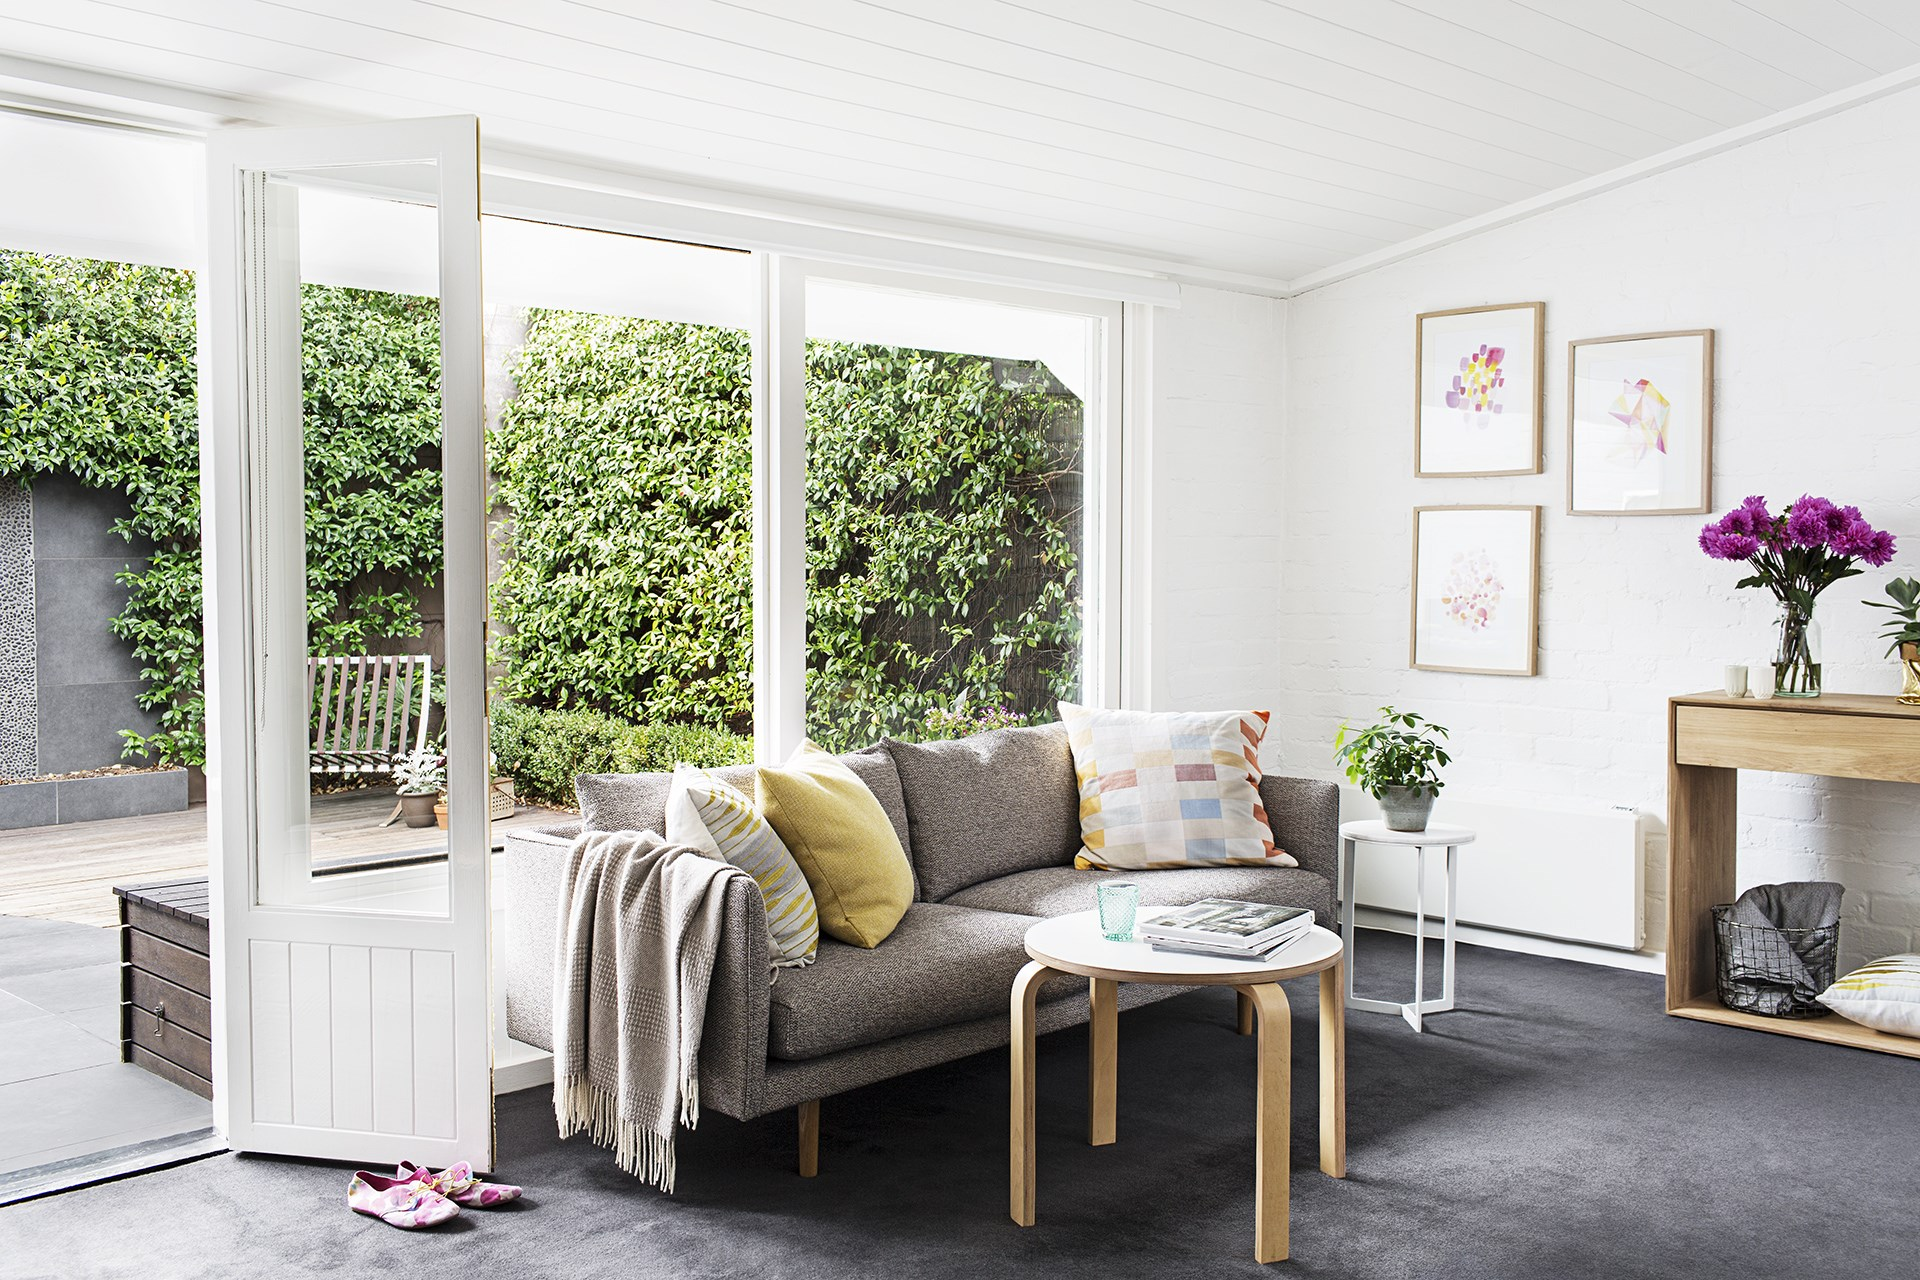 "A high-quality, Australian-made sofa from [Jardan](http://www.jardan.com.au/?utm_campaign=supplier/|target=""_blank"") will stand the test of time in this [Melbourne terrace](http://www.homestolove.com.au/georgias-light-filled-melbourne-terrace-2245